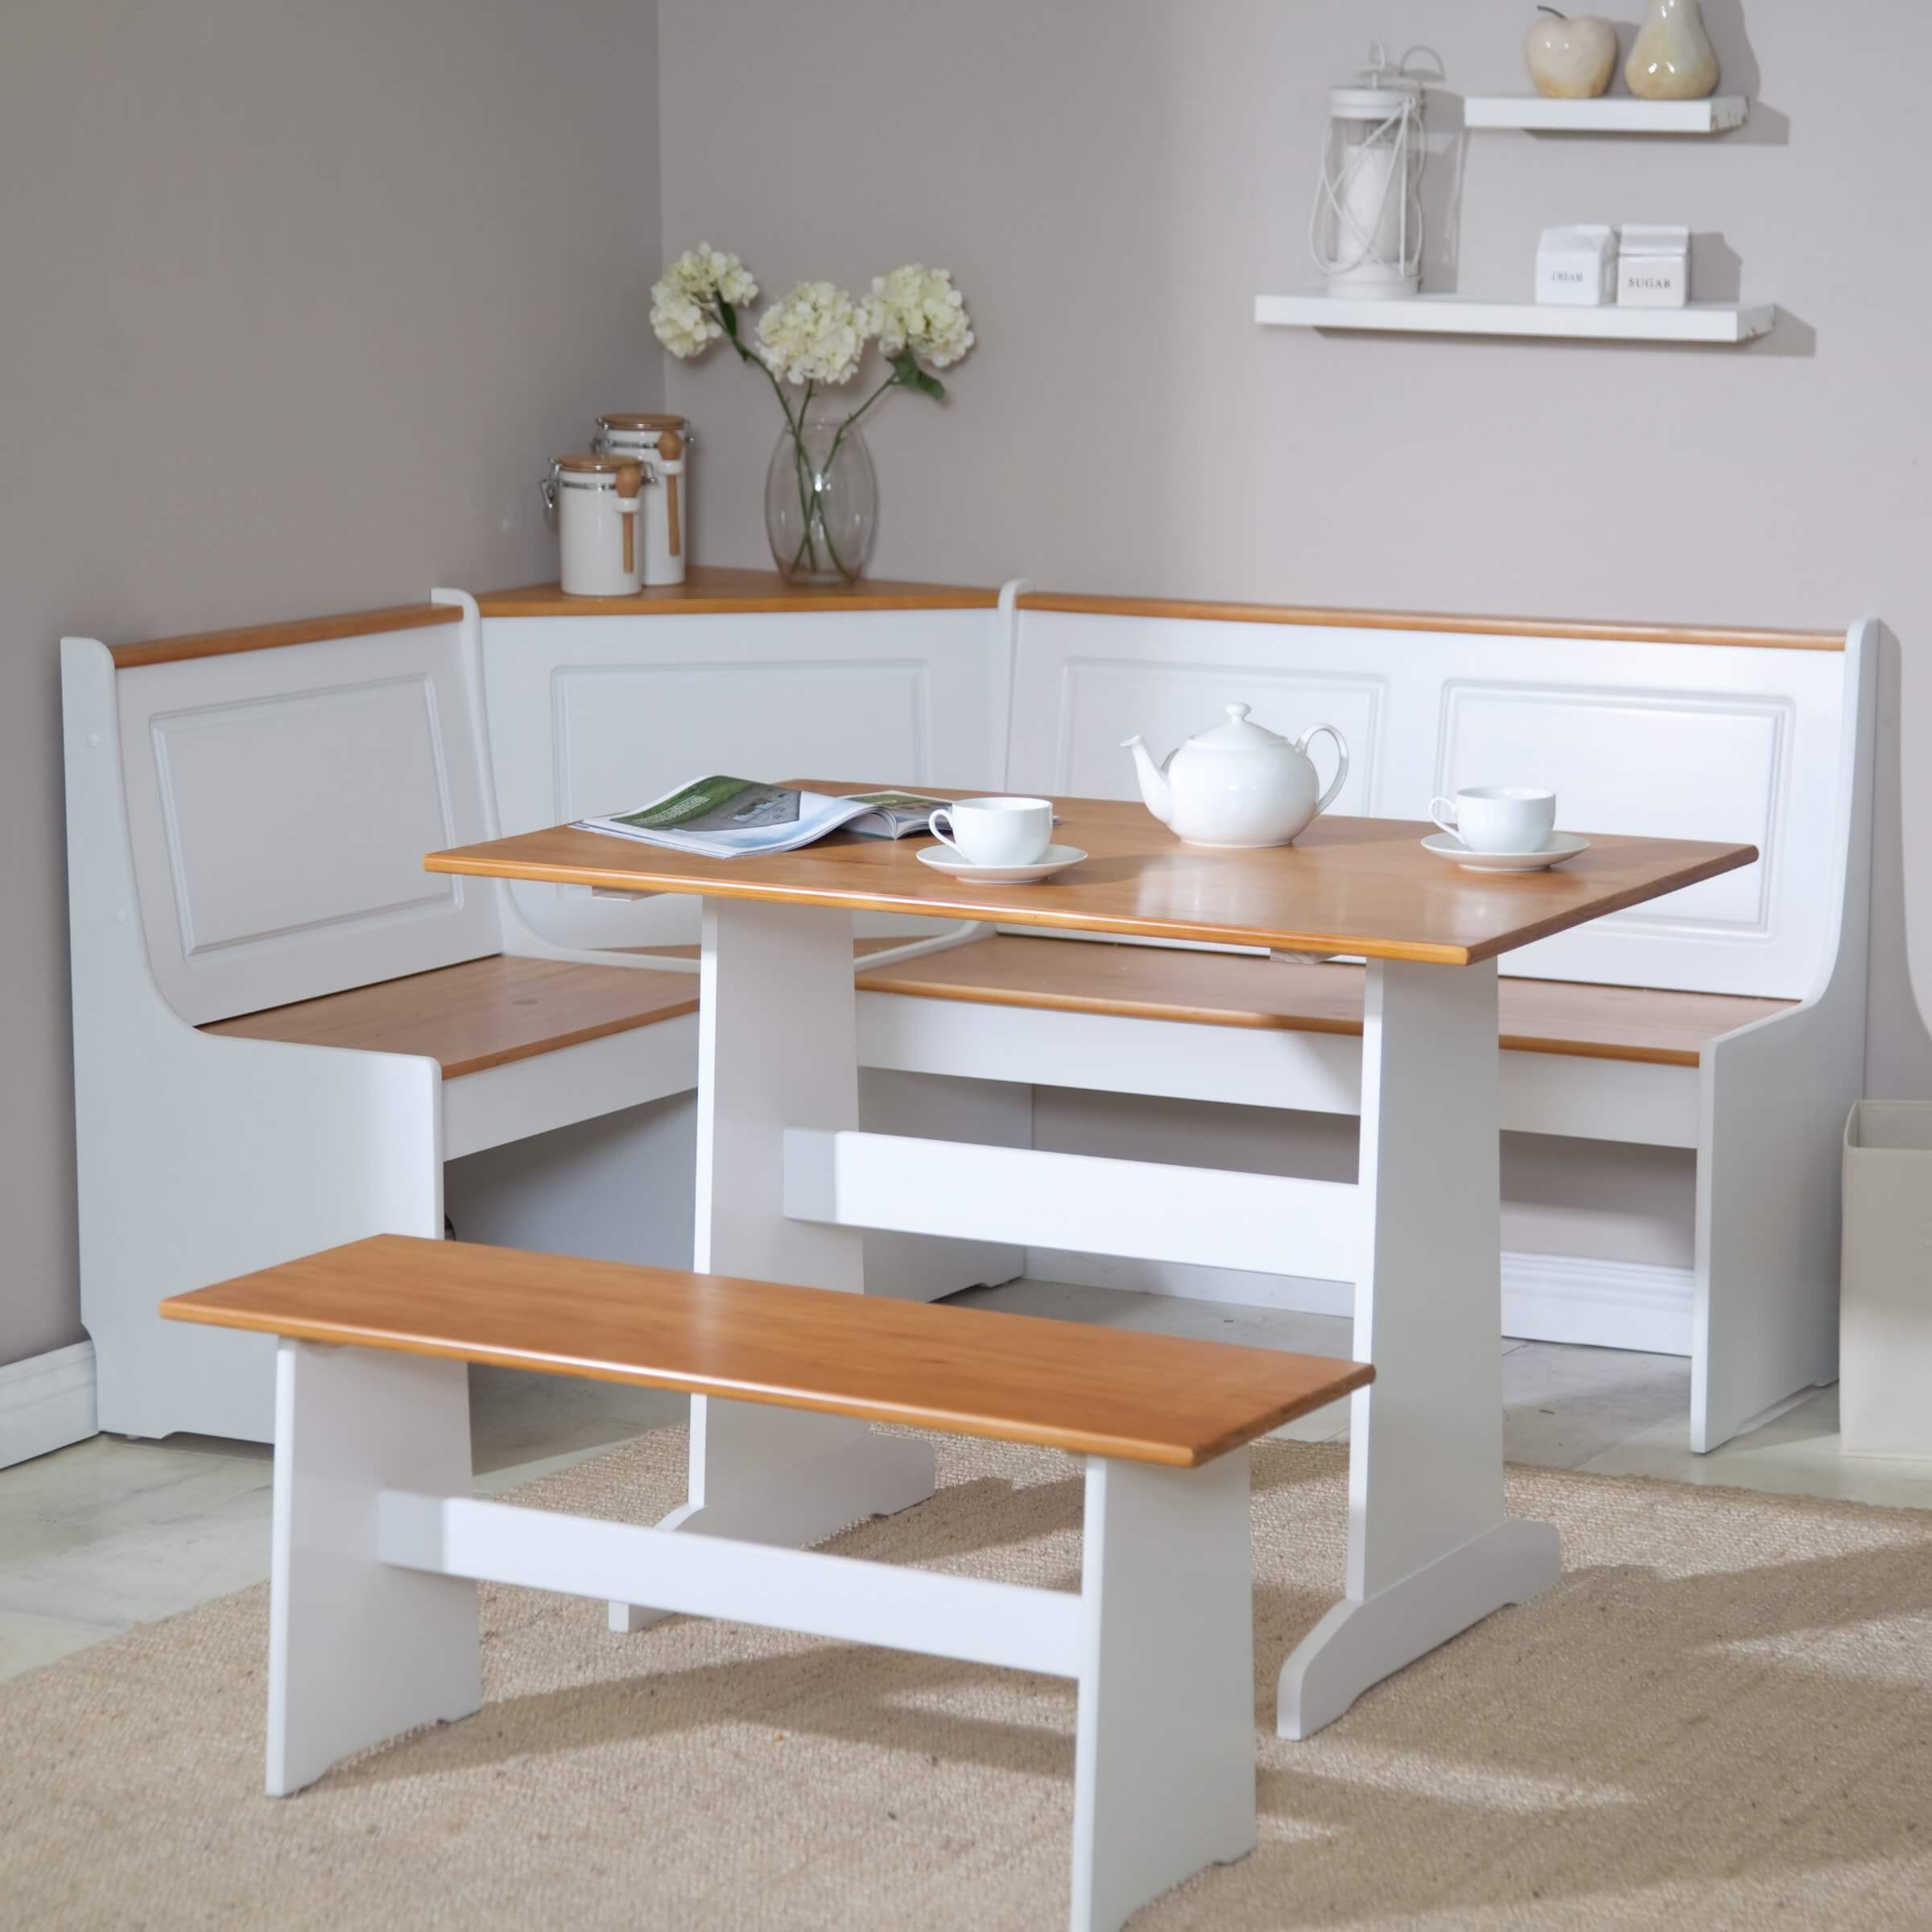 3. Ardmore Breakfast Nook Set